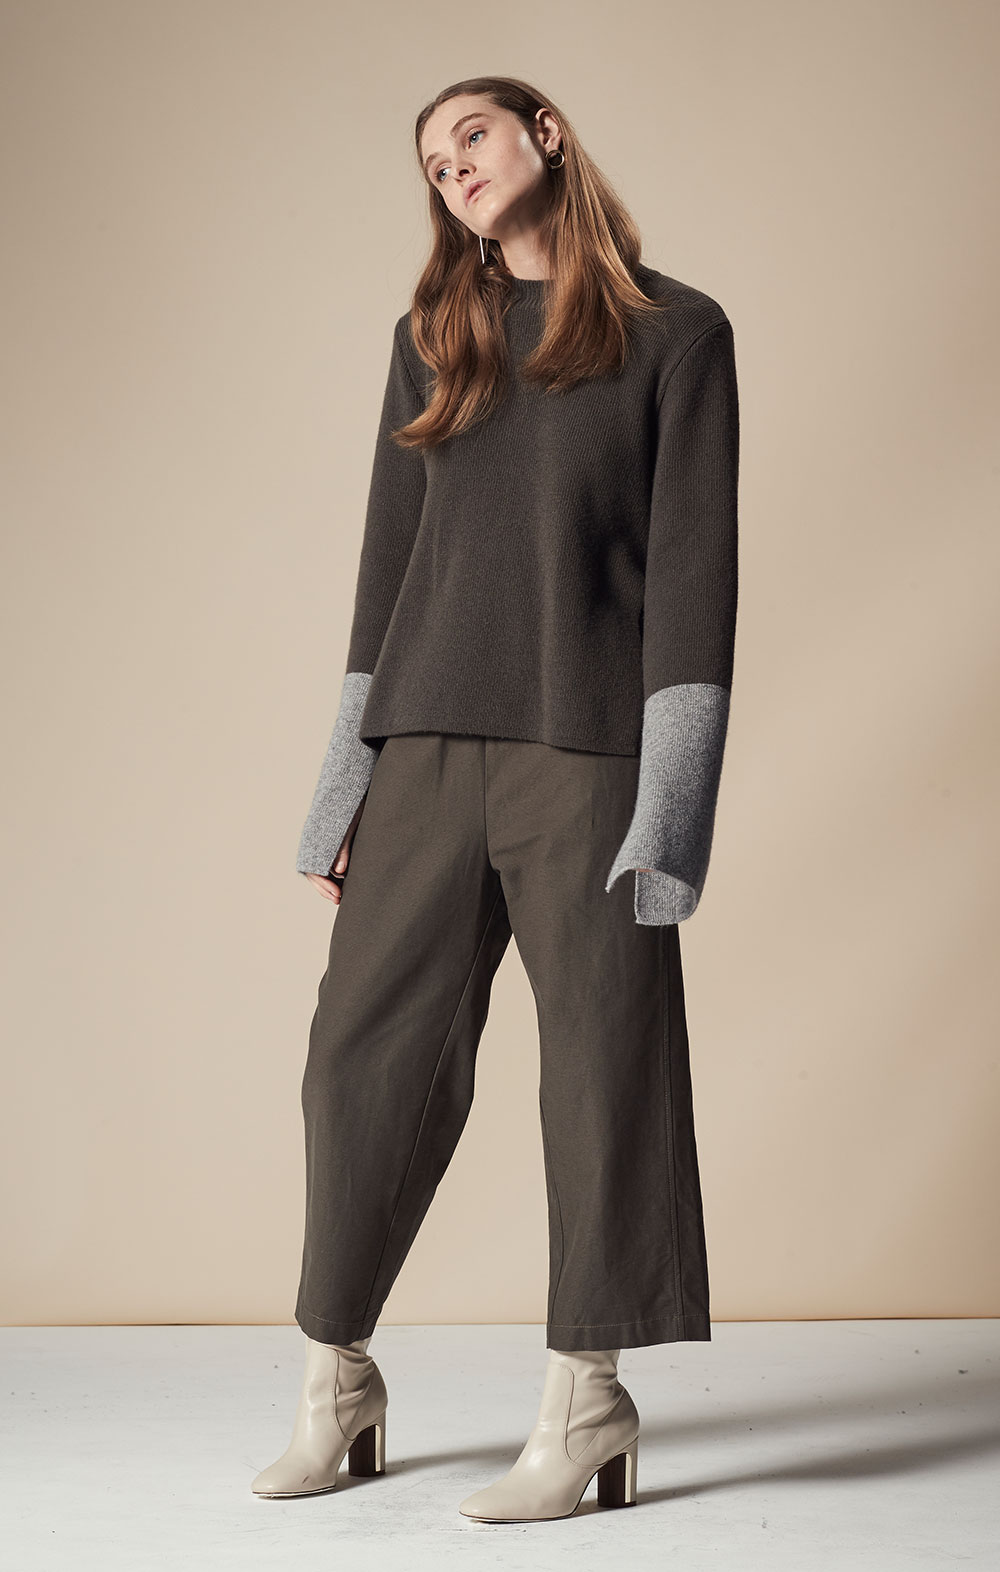 Cashmere-blend Color Block Pullover FBK094-OLV/GRY Elastic Waist Washed Cotton Pants FBP042-OLV